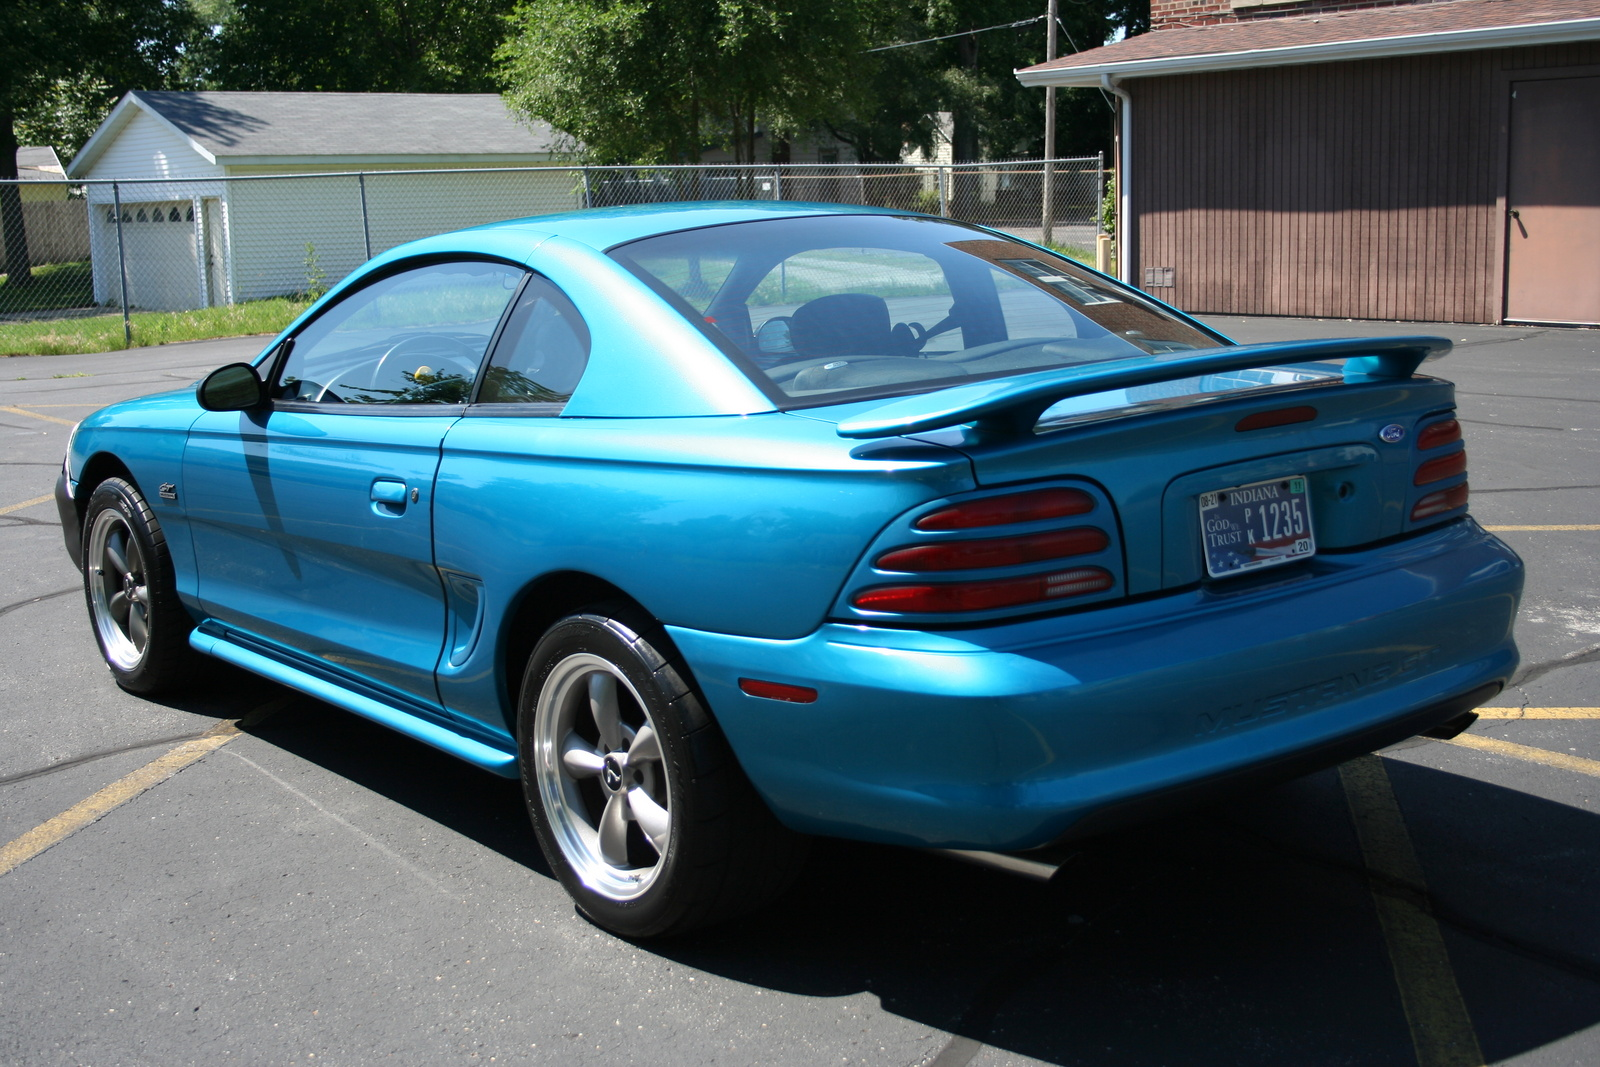 1995 Ford Mustang - Exterior Pictures - CarGurus